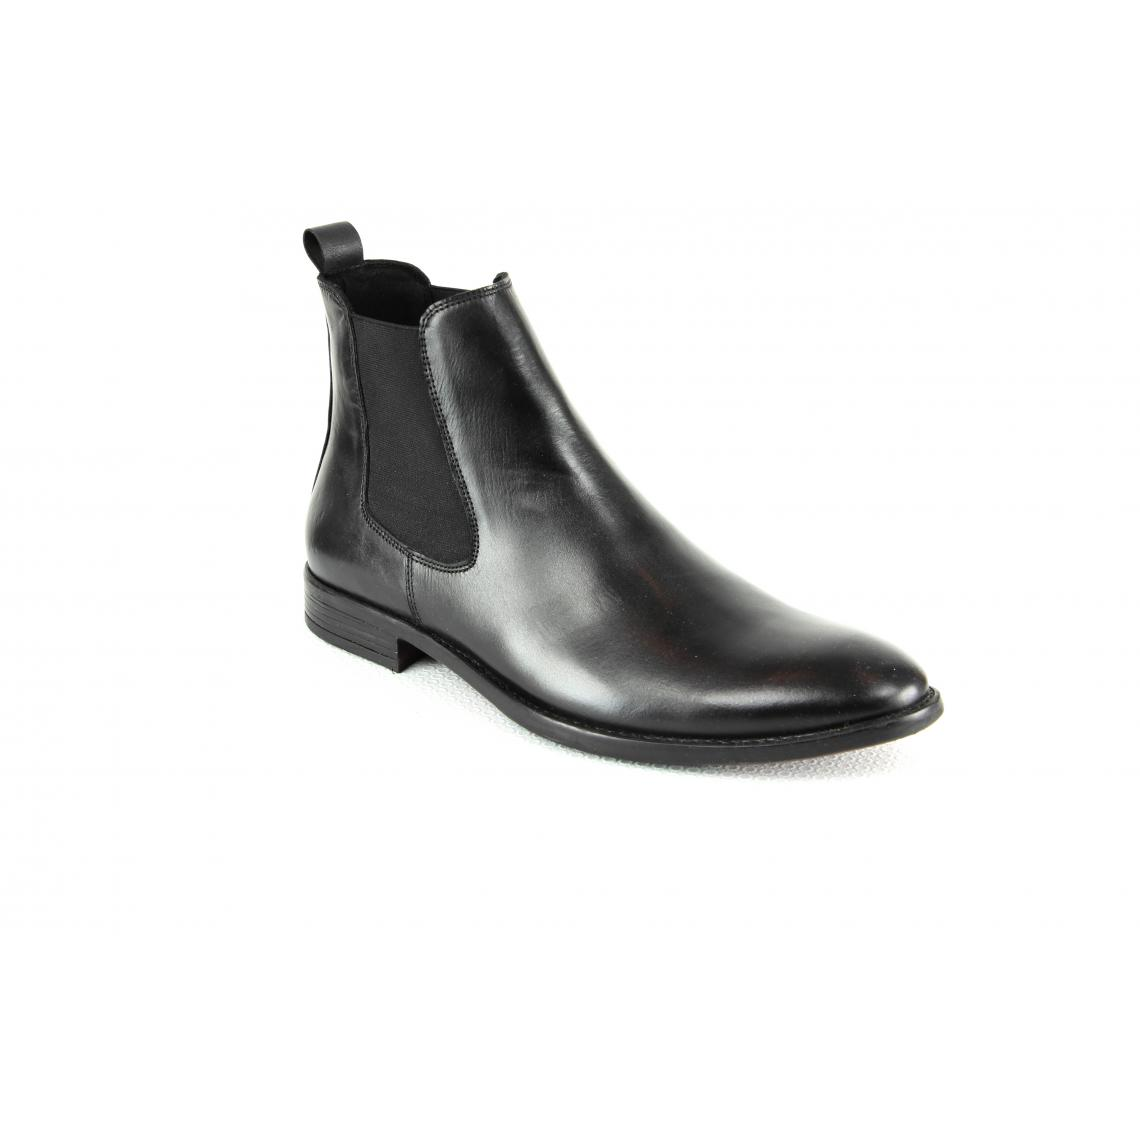 Promo : Boots Marcel